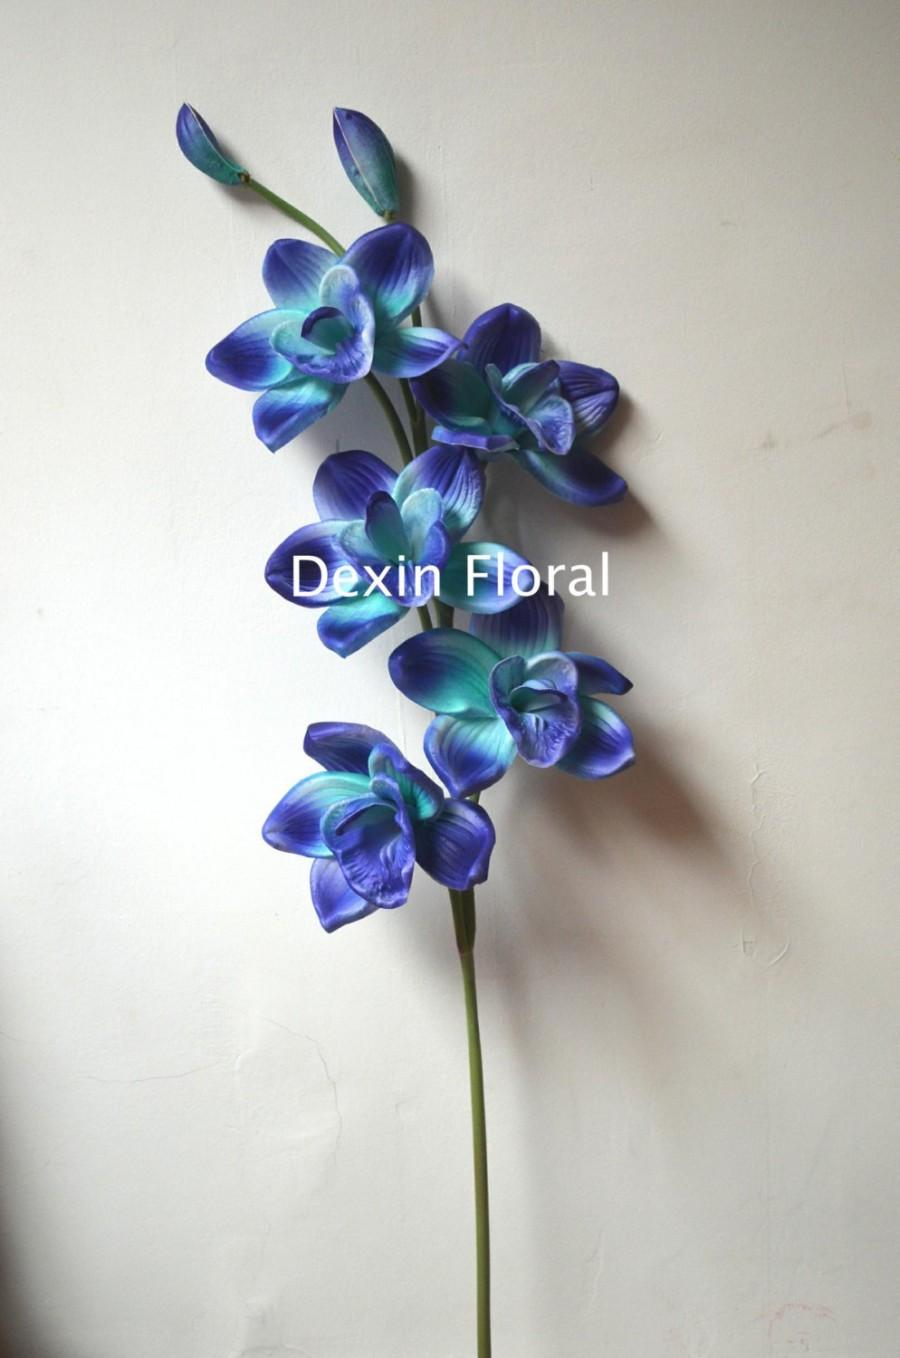 Hochzeit - Two Tone Blues Cymbidium Orchids Single Stems Centerpieces Real Touch Flowers Decorations Bridal Bouquets Wedding flowers